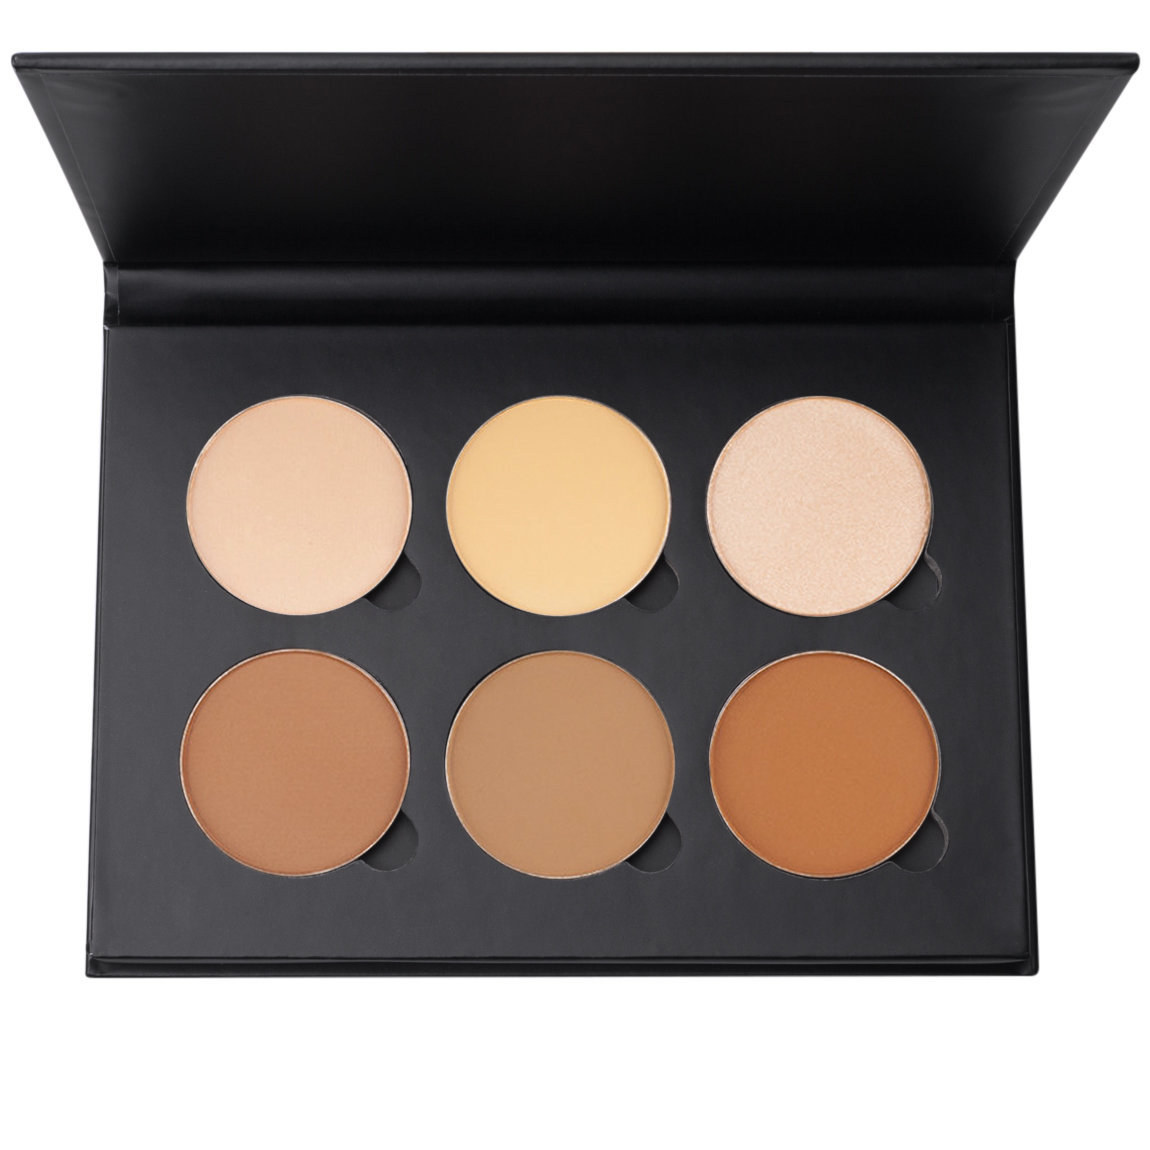 Anastasia Beverly Hills Contour Powder Kit alternative view 1 - product swatch.